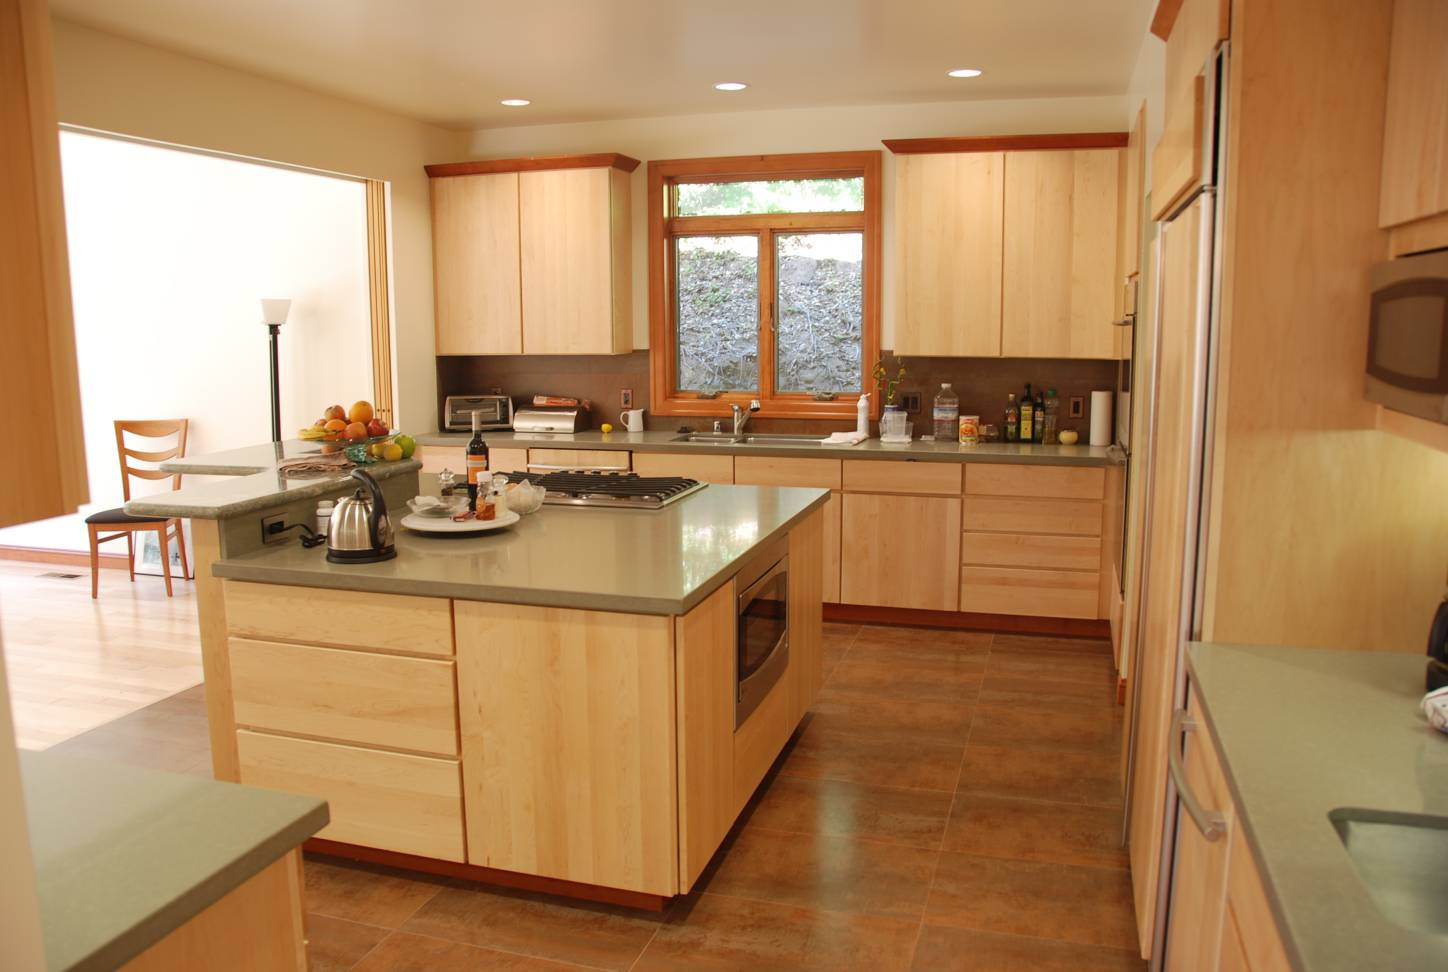 Kitchen with grey countertops, architect design work, Menlo Park